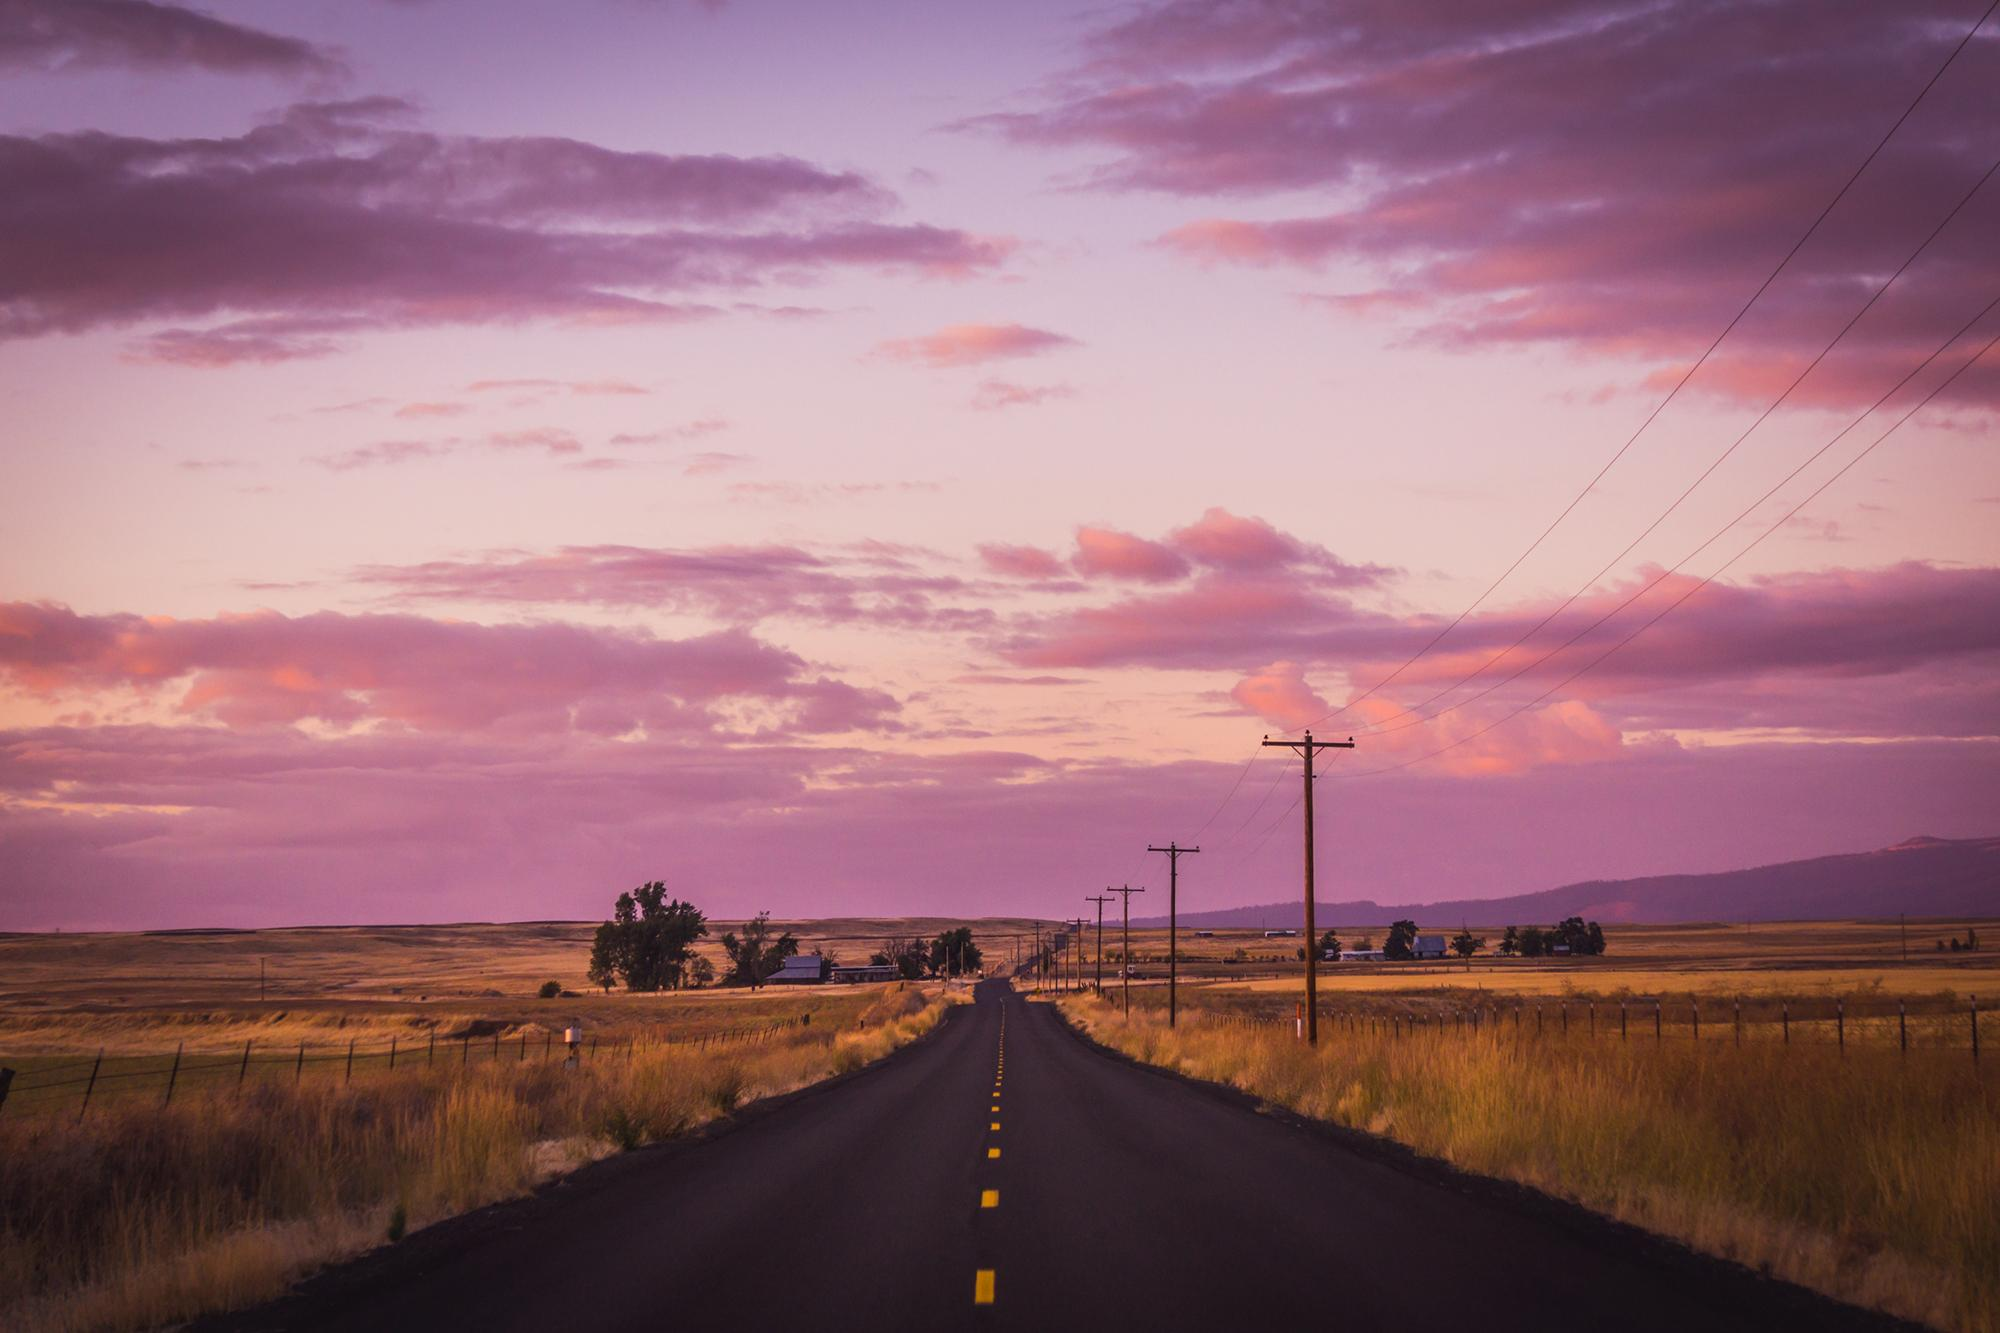 Roads that go on forever.